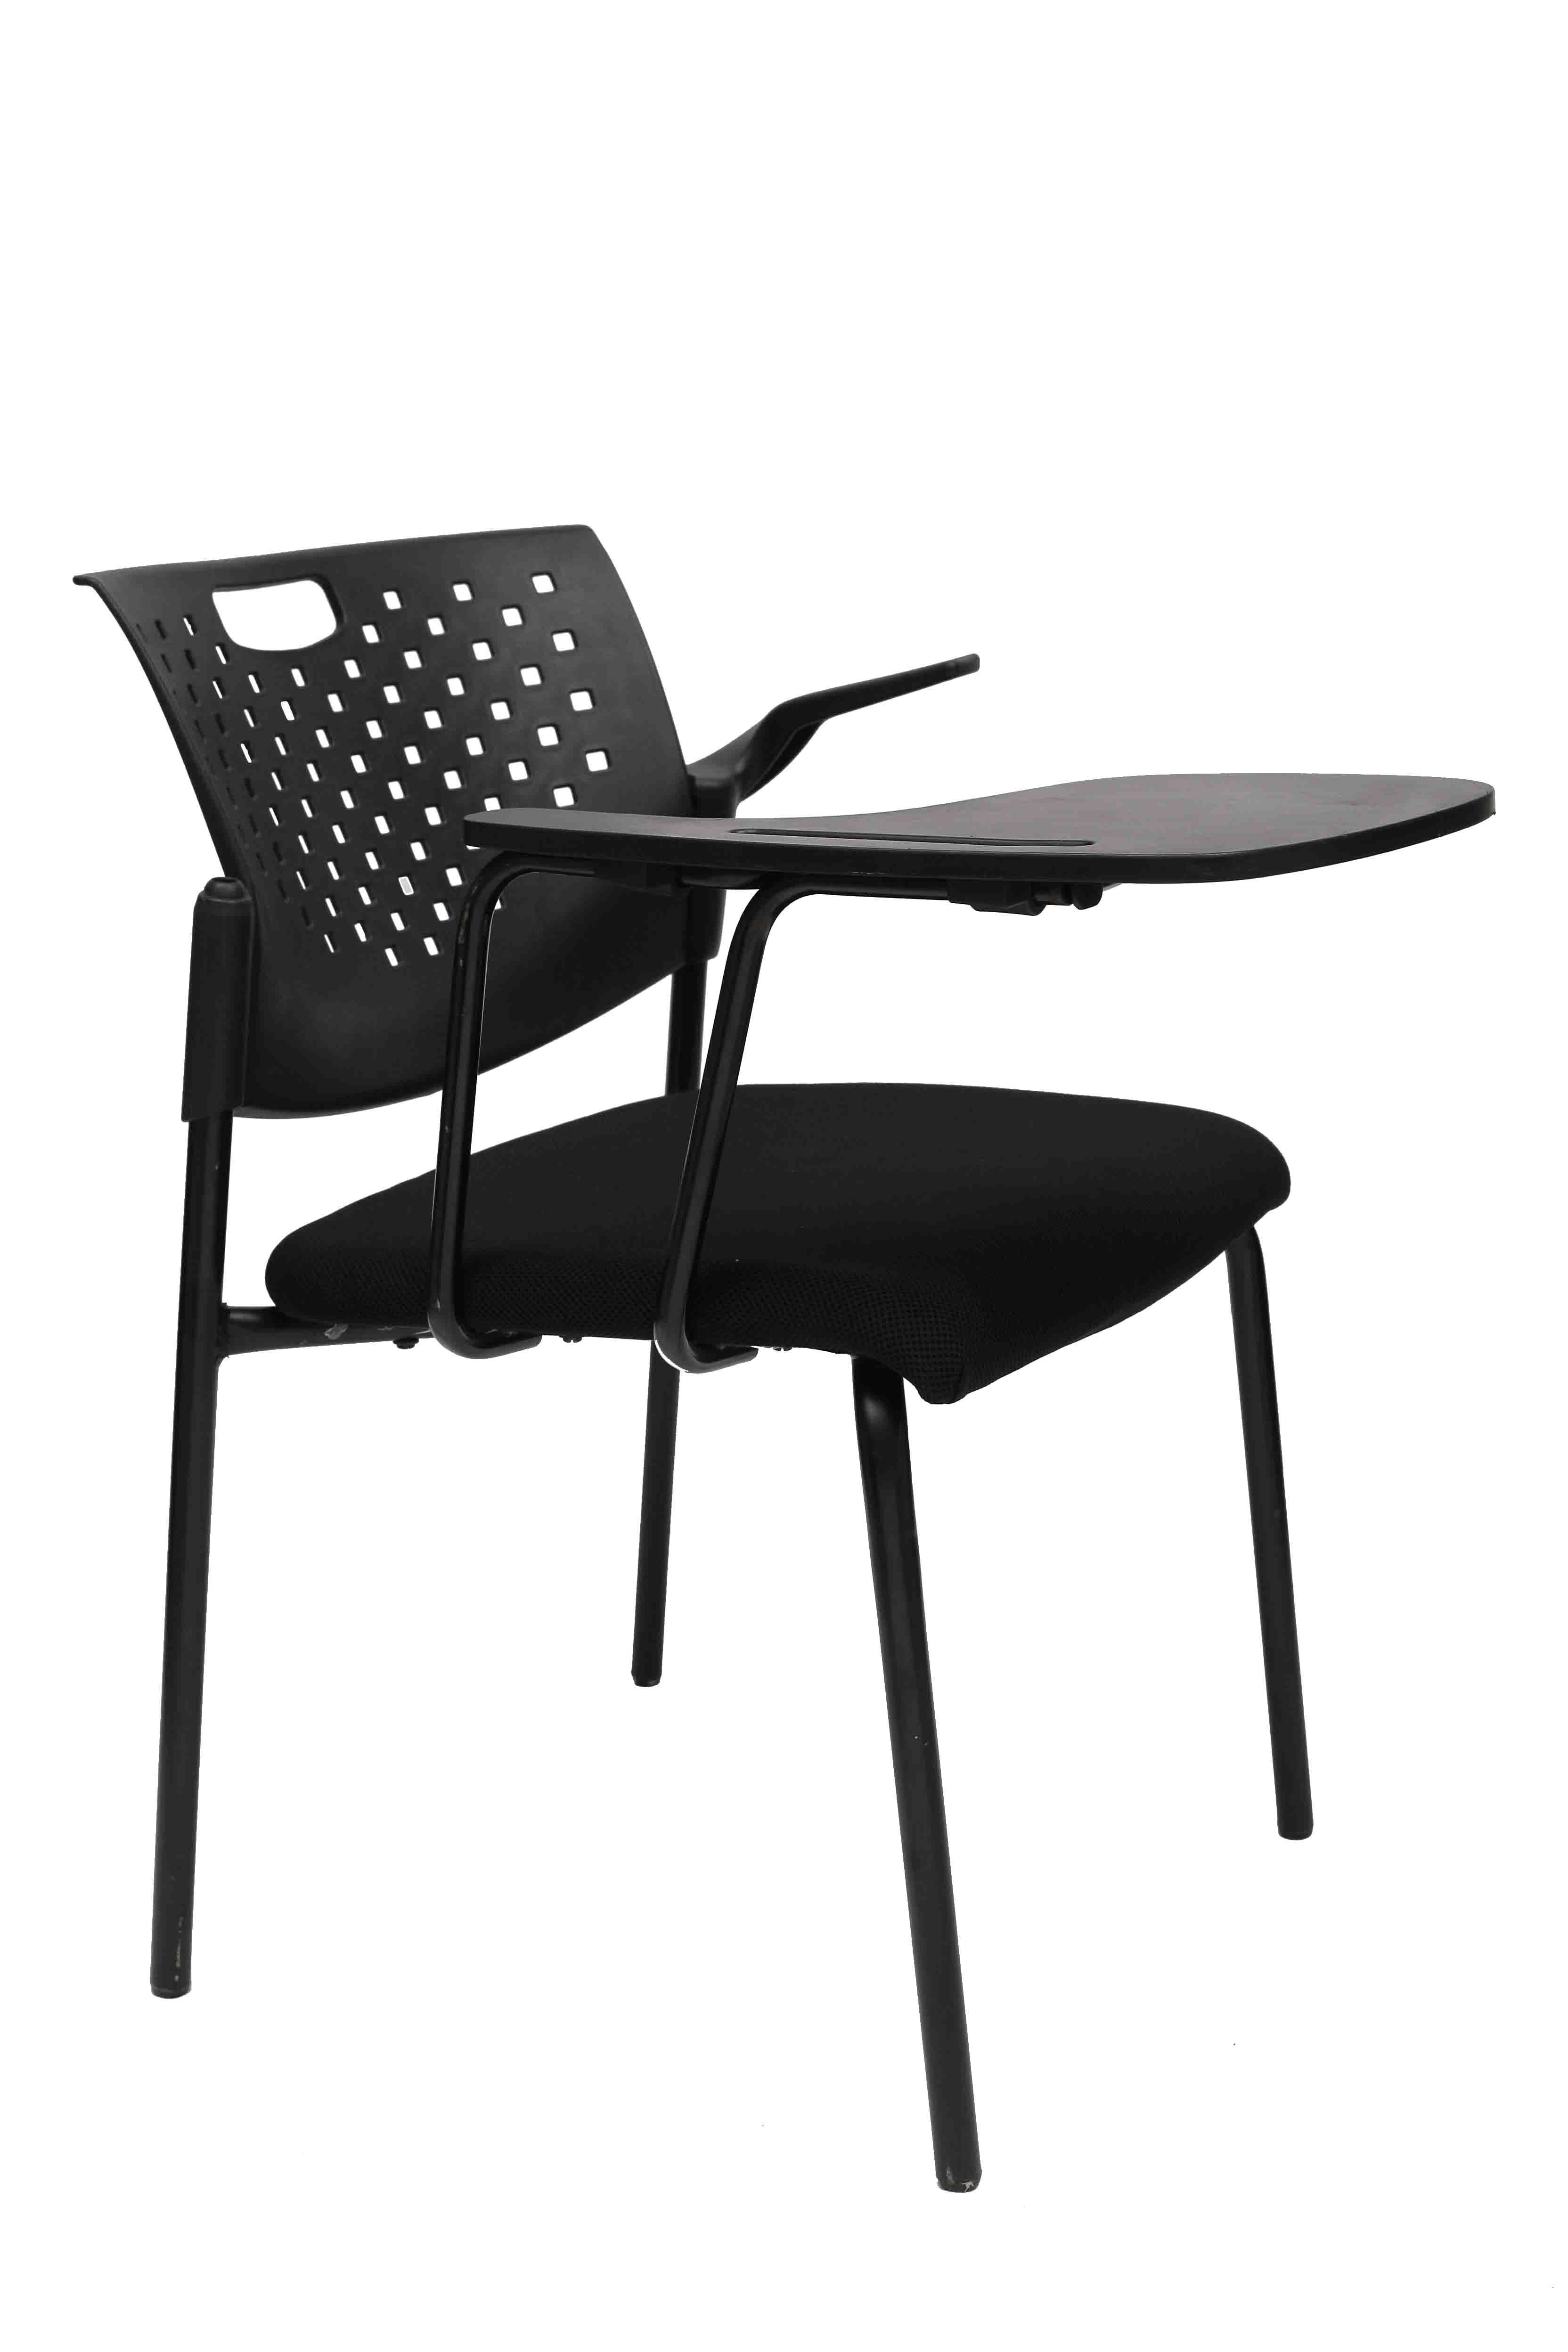 best study chair portable audience chairs scholar buy online at